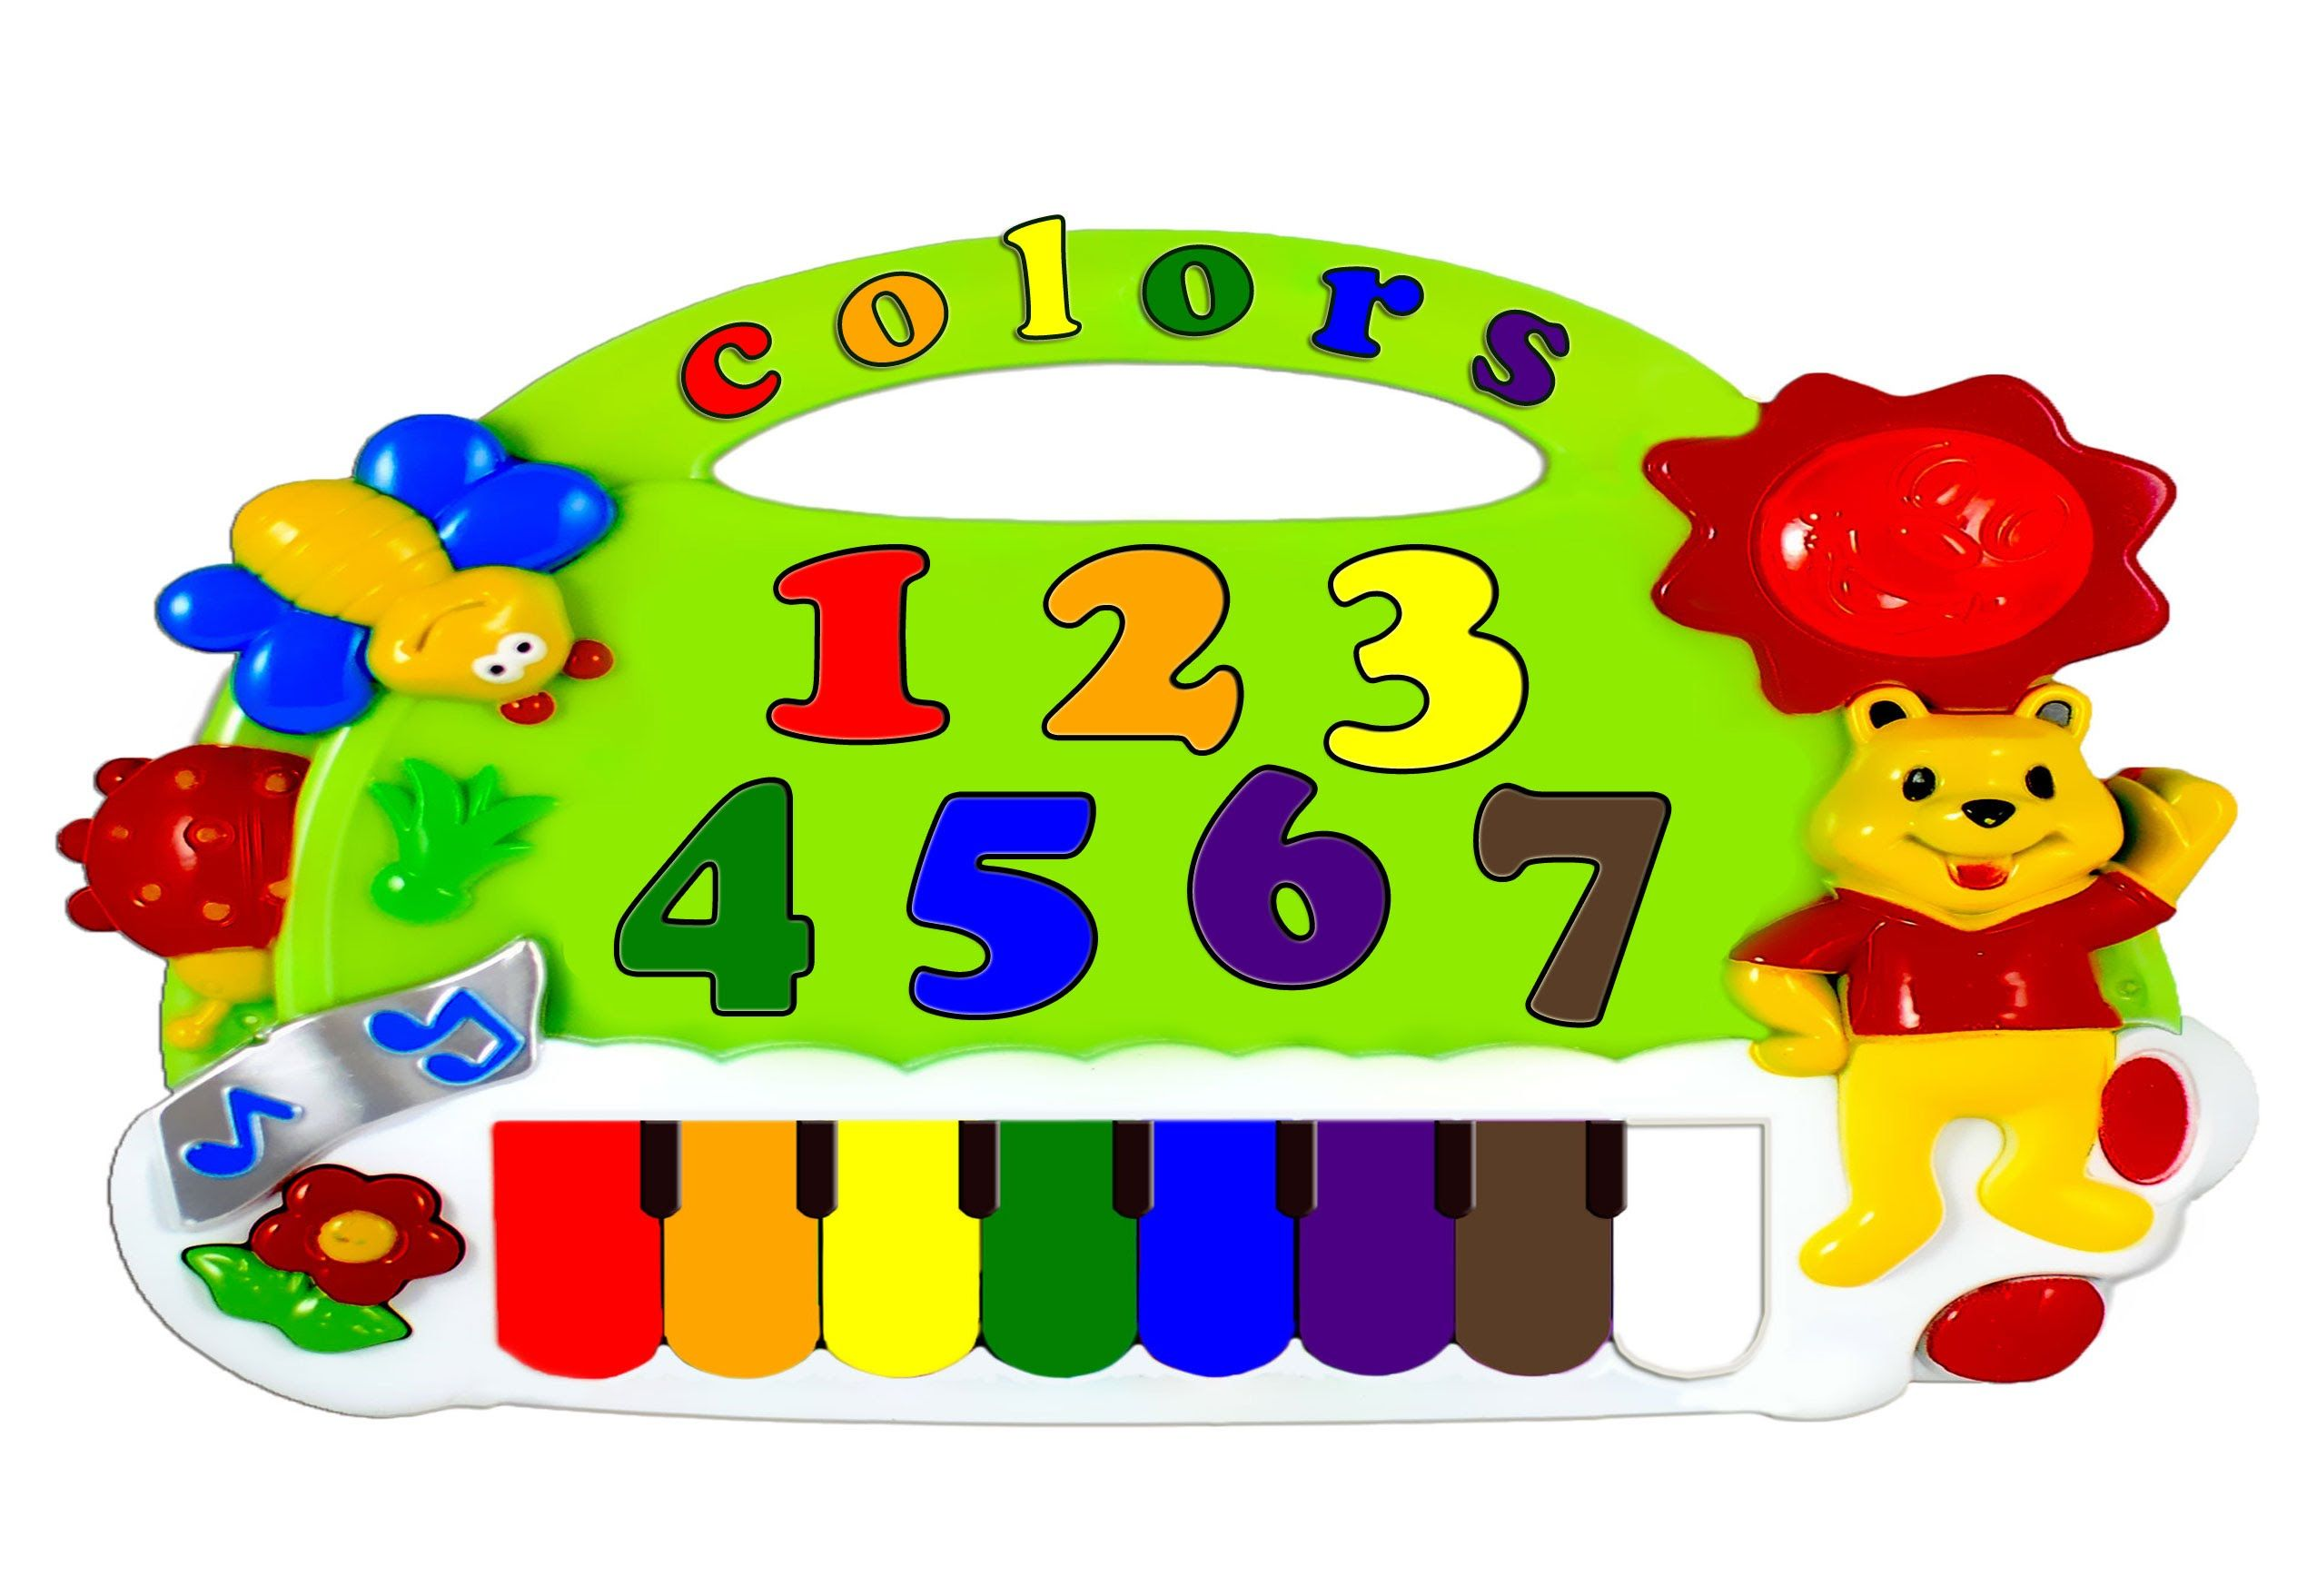 Almost 60 Minute Video Teaches Children The Rainbow Color Names With